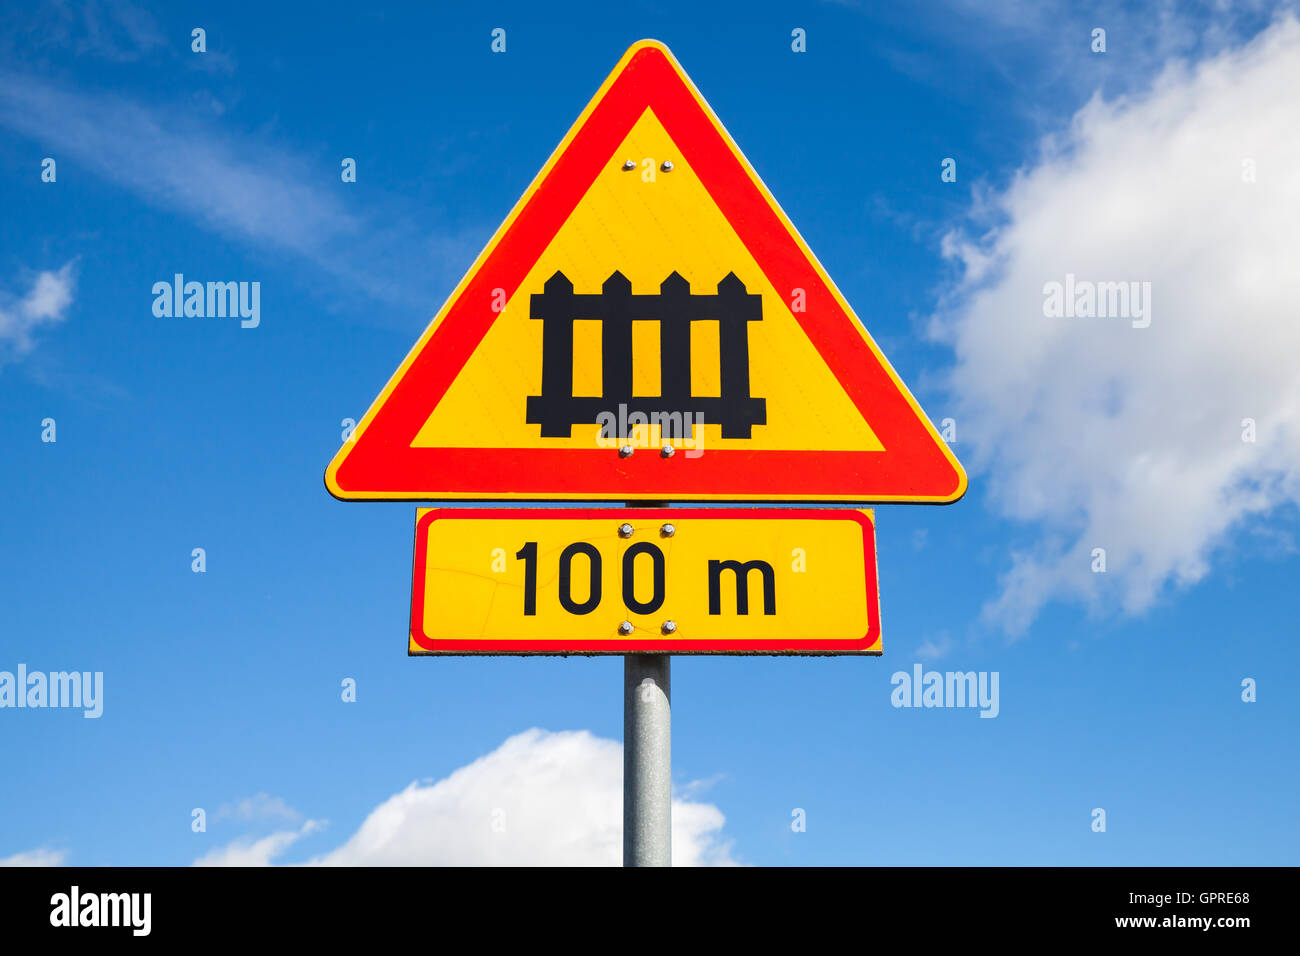 Sweden railway crossing with gate sign. Triangular warning roadsign with red border and 100m distance label over - Stock Image